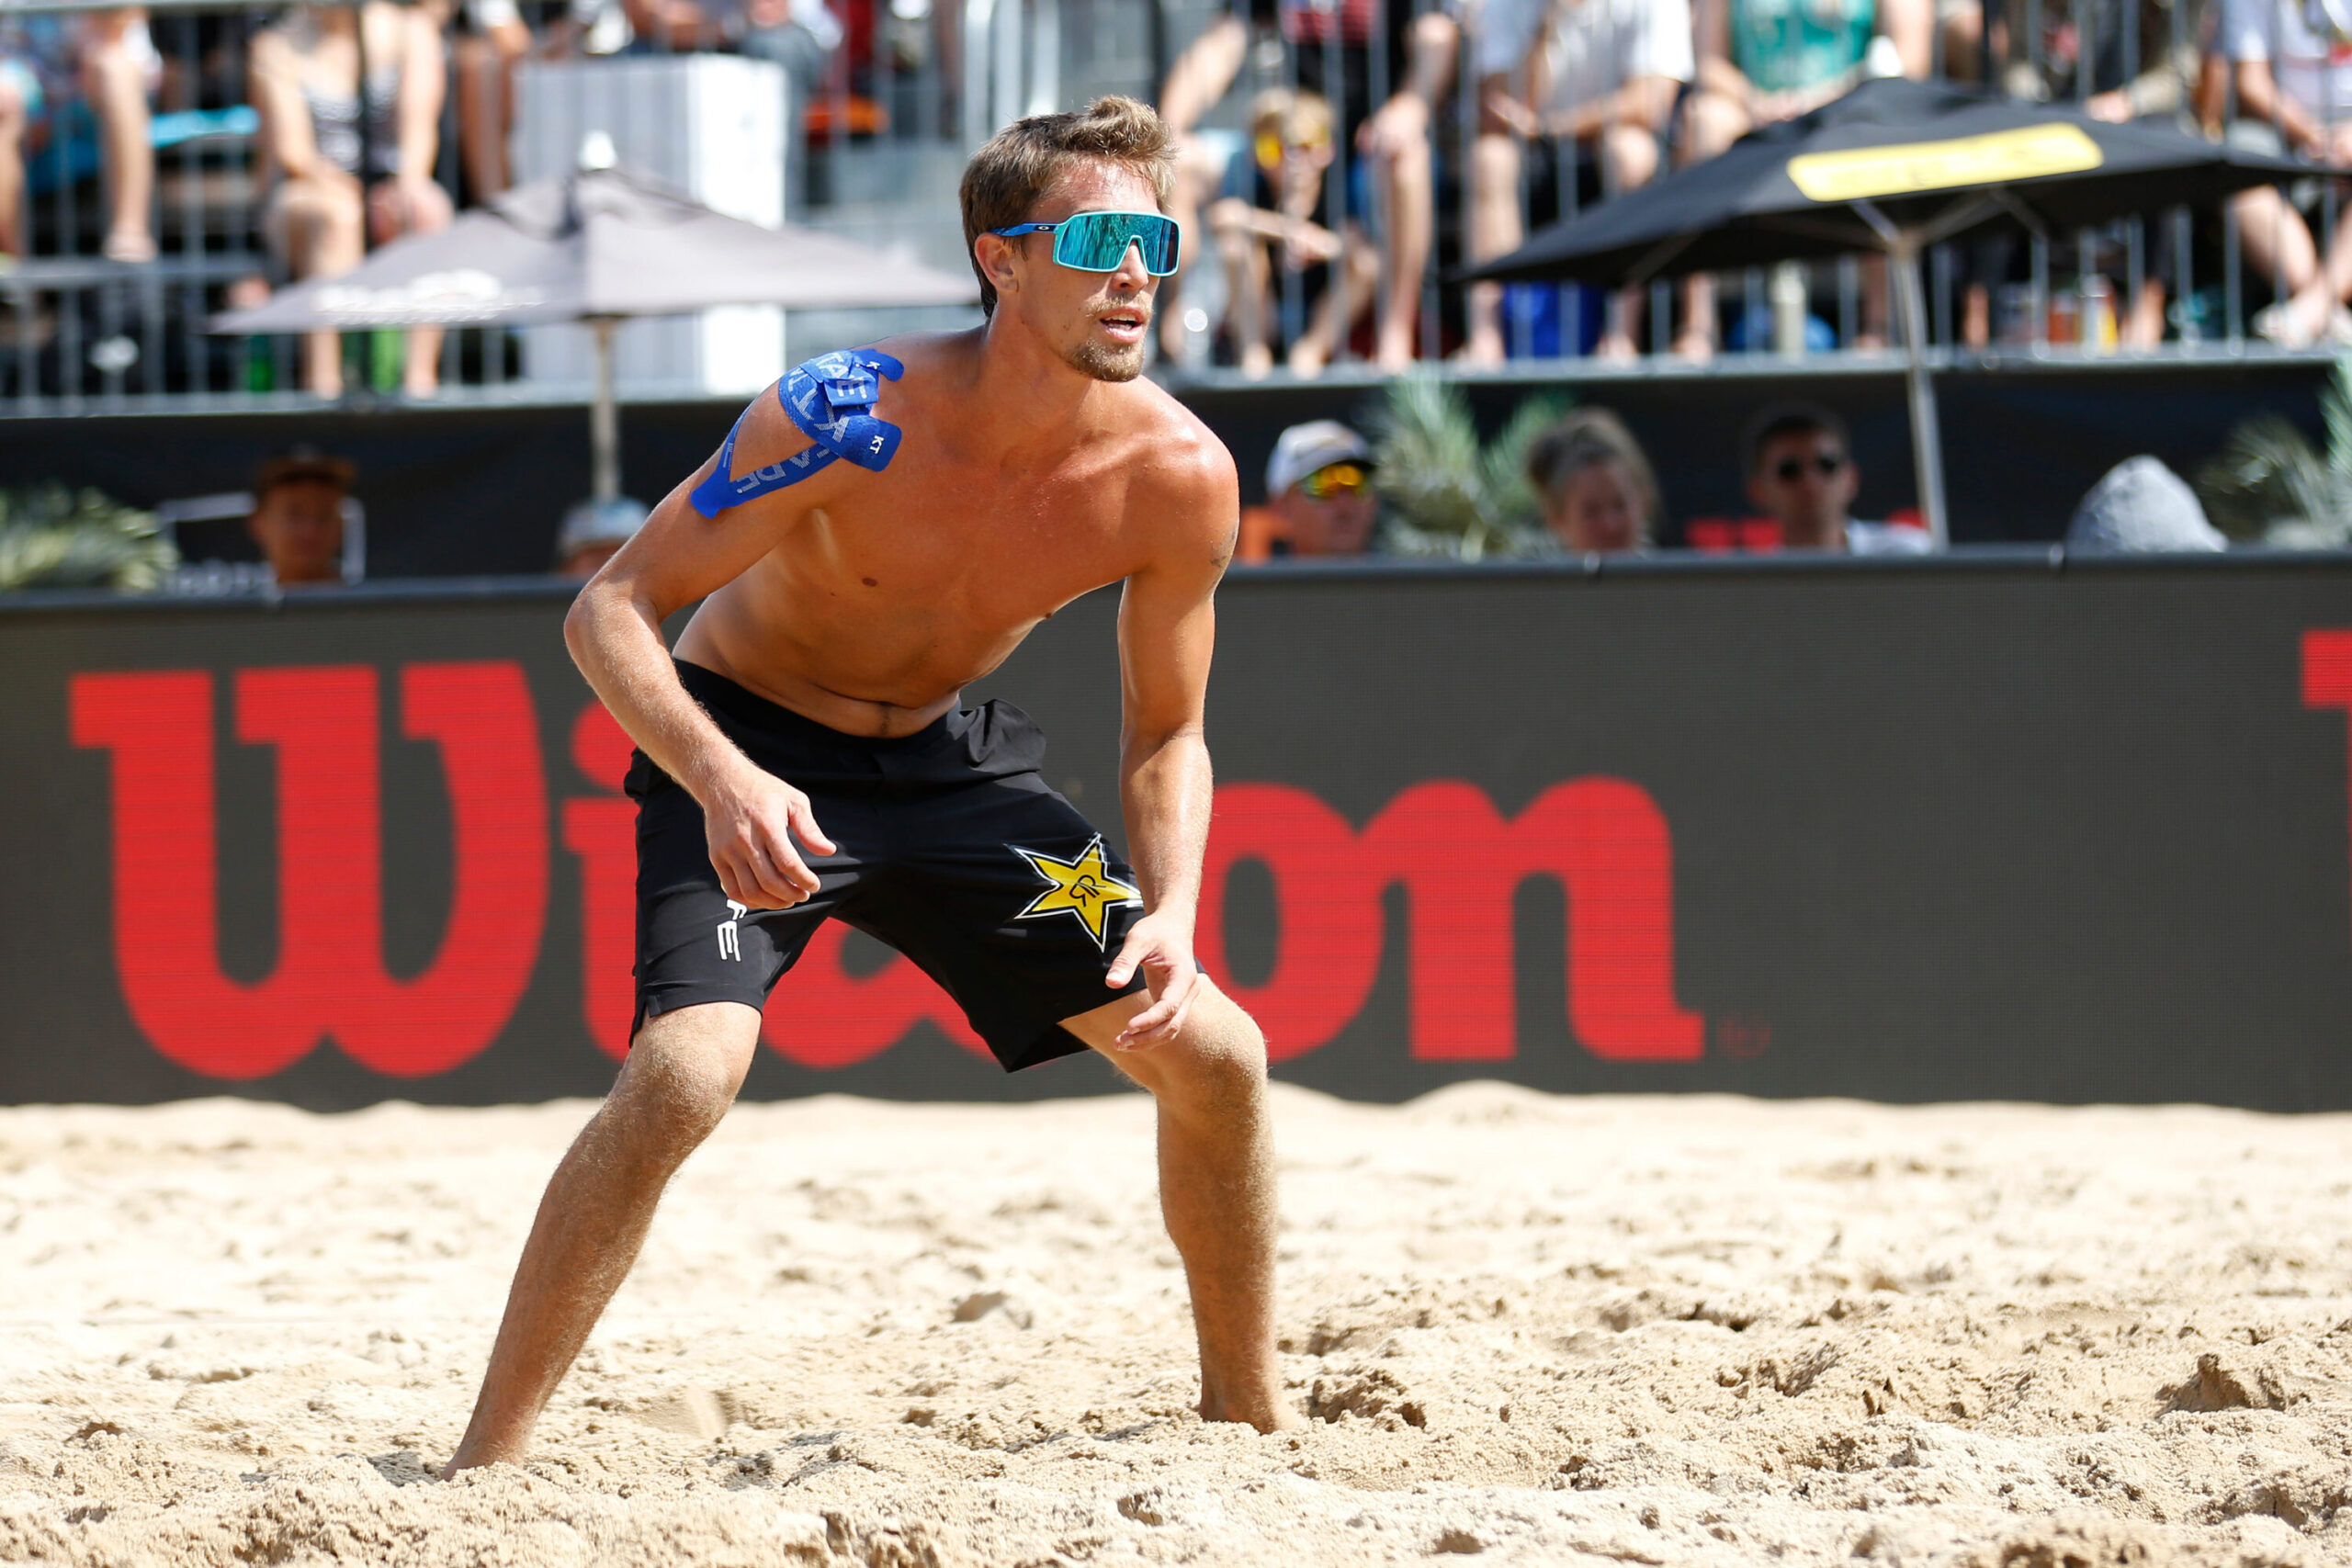 <i>Justin Casterline/Getty Images</i><br/>US men's beach volleyball player Taylor Crabb reportedly tested positive for Covid-19.